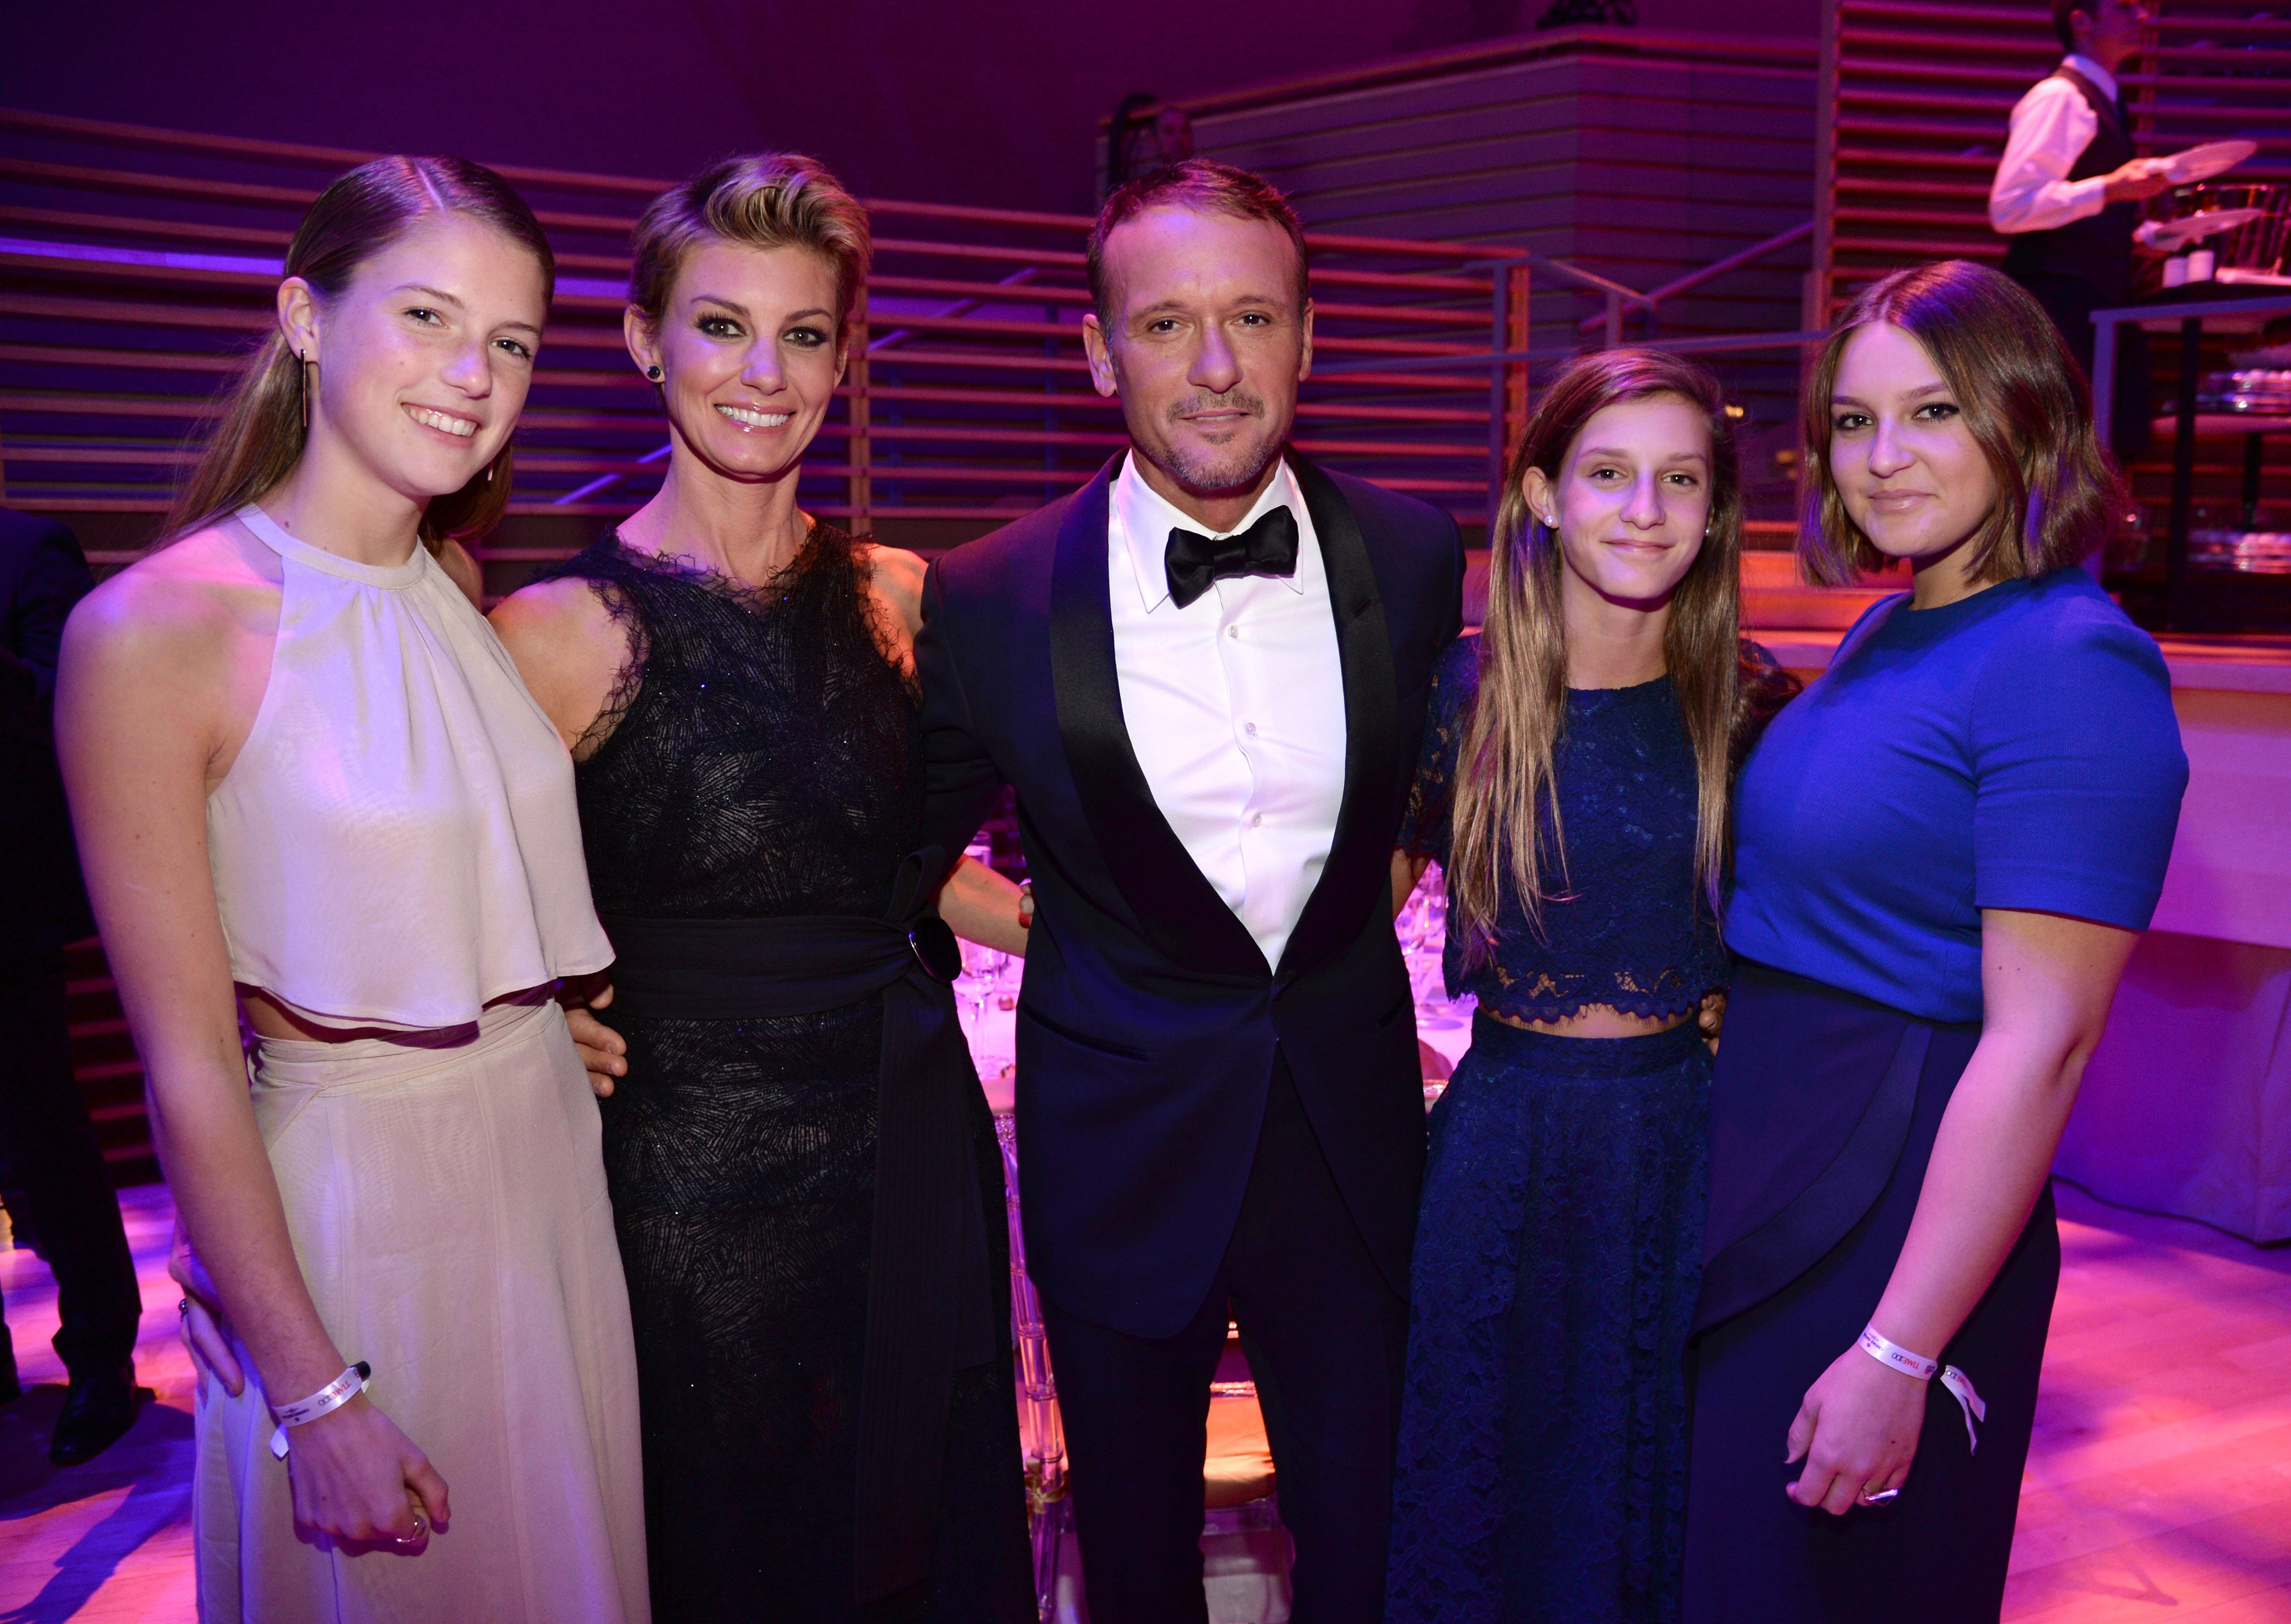 Image Credits: Getty Images / Kevin Mazur | Gracie McGraw, Faith Hill, Tim McGraw, Audrey McGraw and Maggie McGraw attend TIME 100 Gala, TIME's 100 Most Influential People In The World at Jazz at Lincoln Center on April 21, 2015 in New York City.